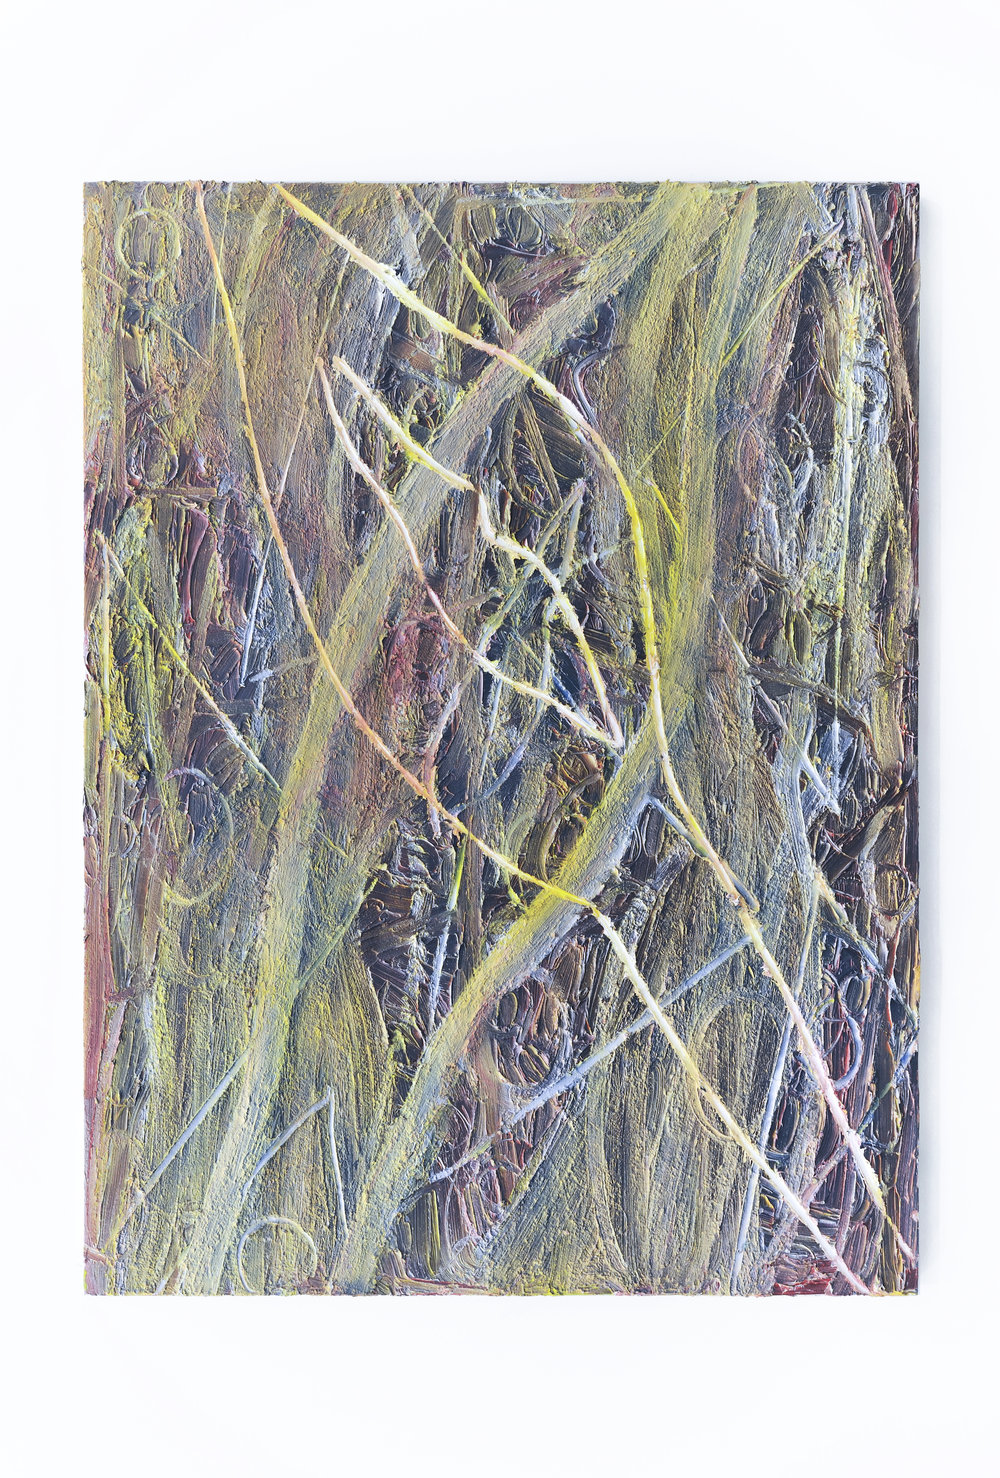 Soup, 2012 oil and spray paint on canvas 162 x 121 cm - 63 3/4 x 47 5/8 inches